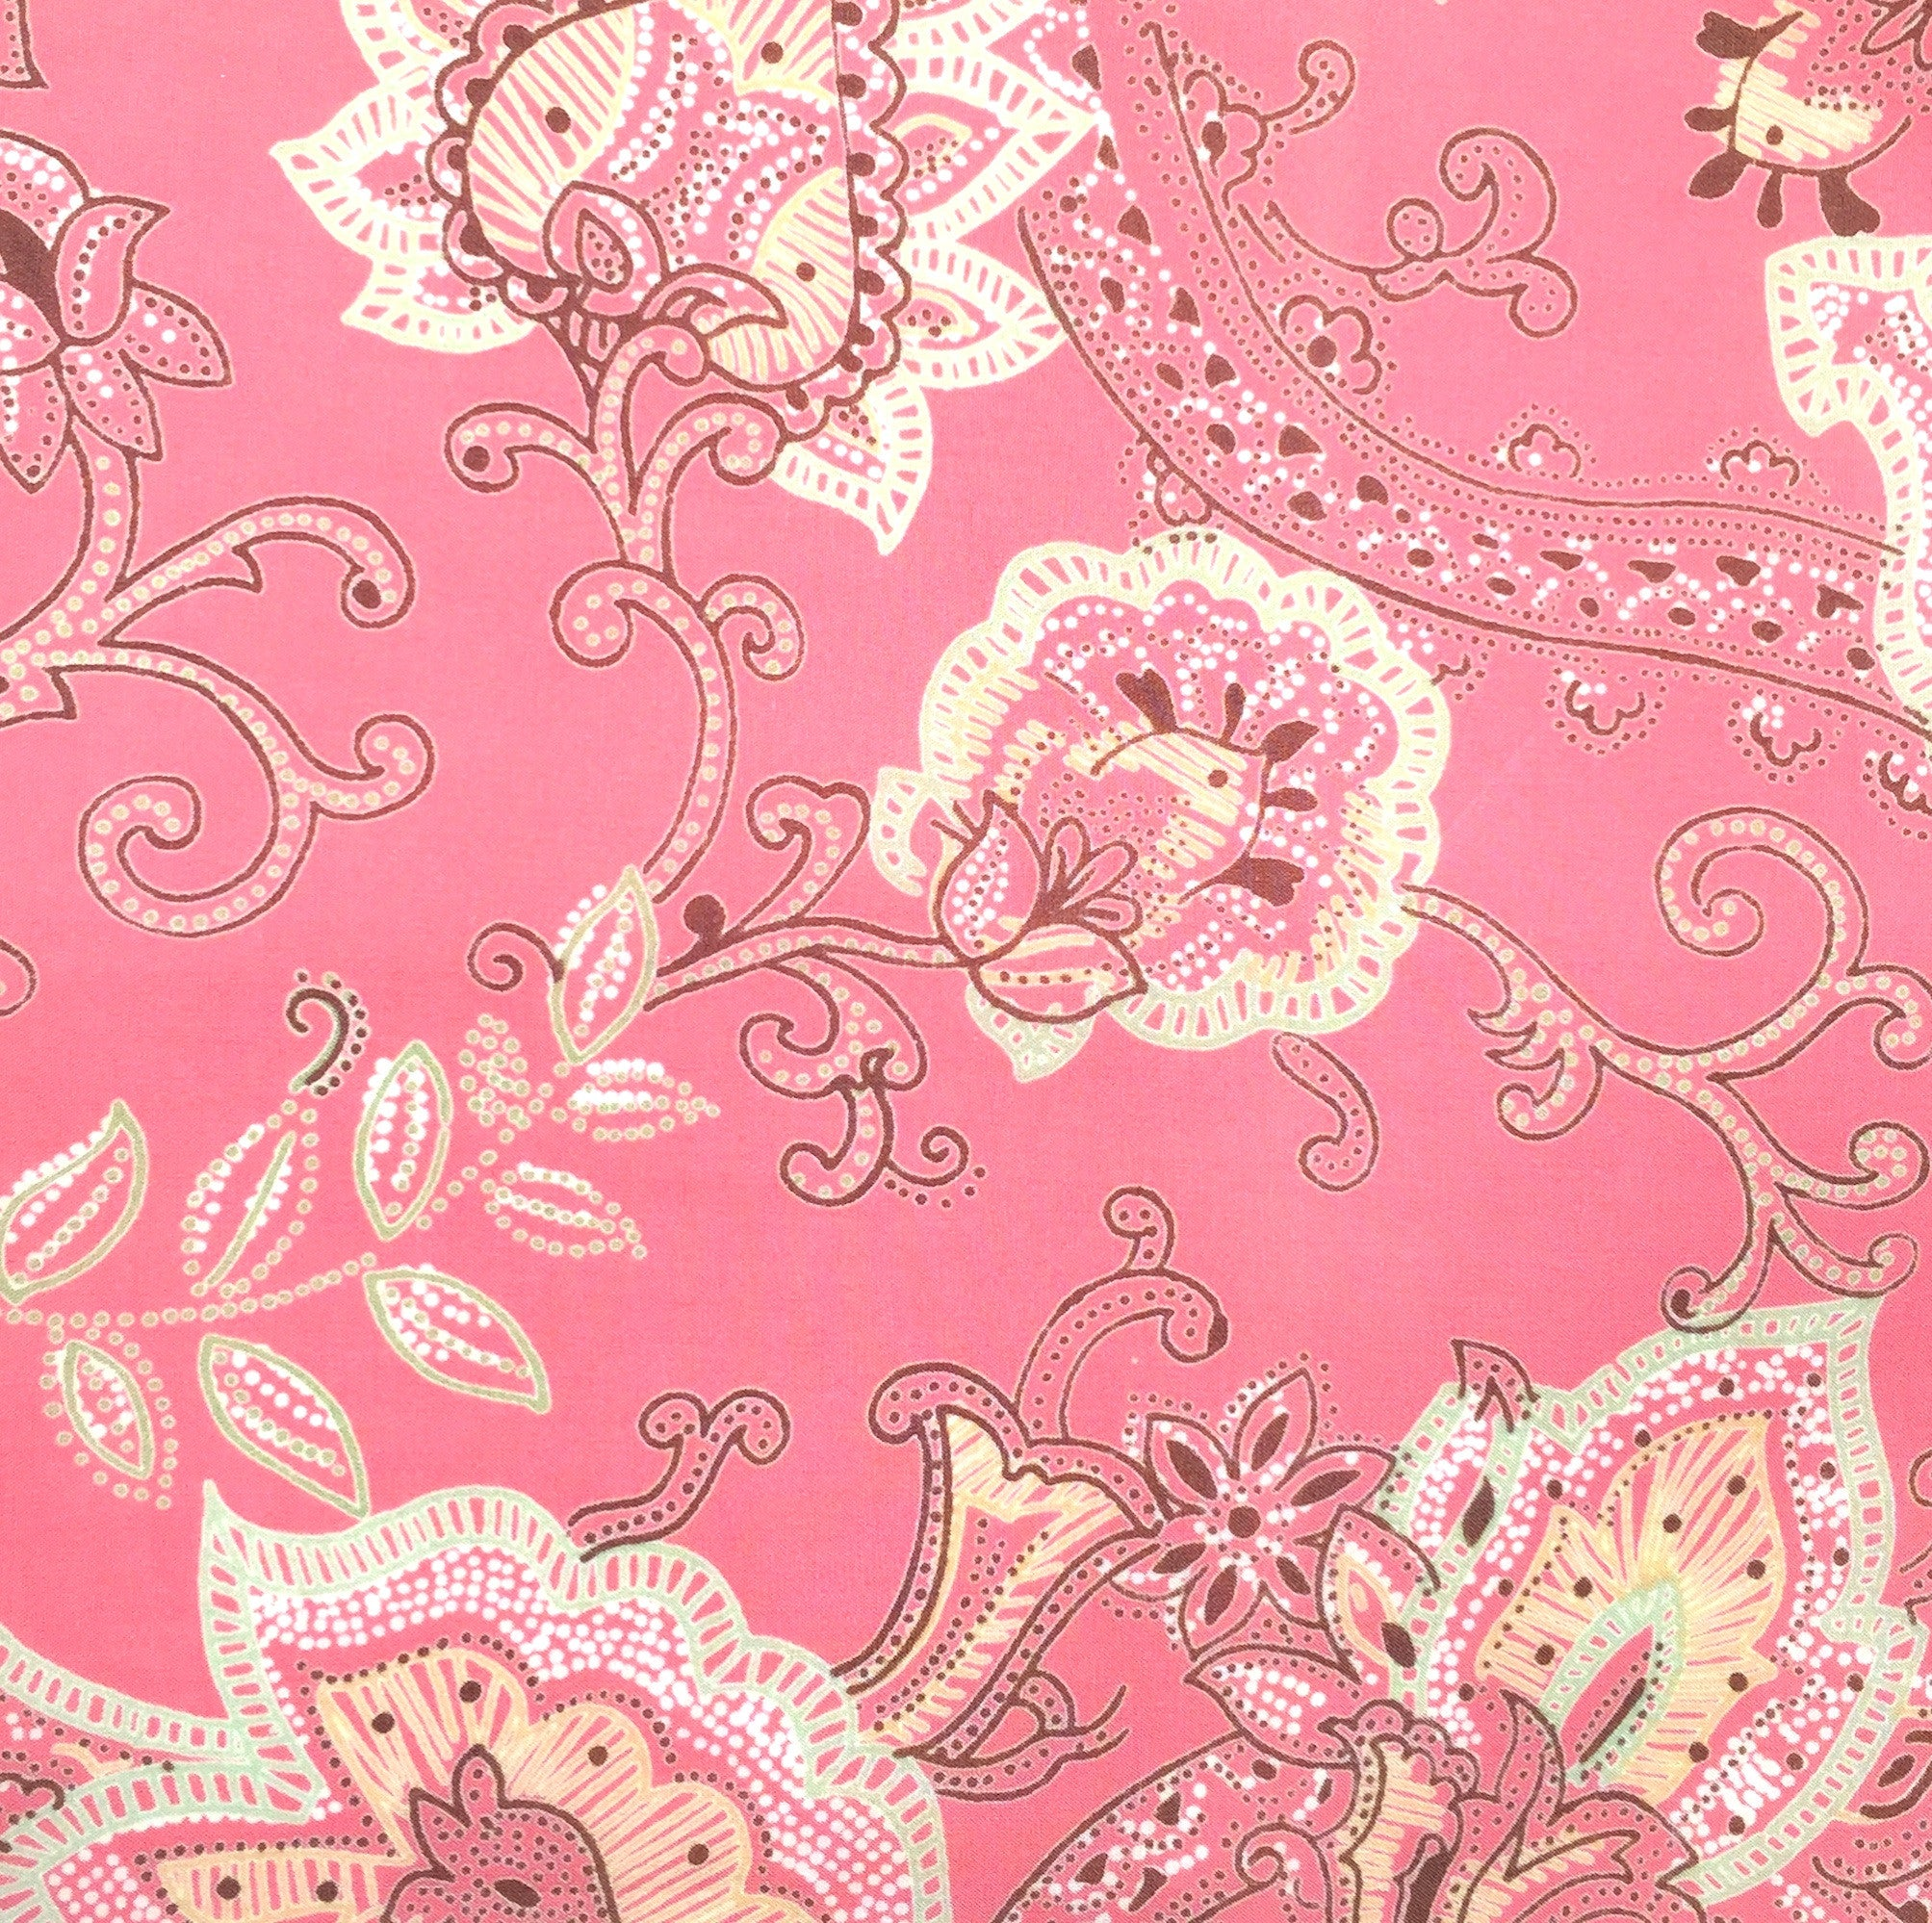 Cotton Percale - Berry Camille Fabric